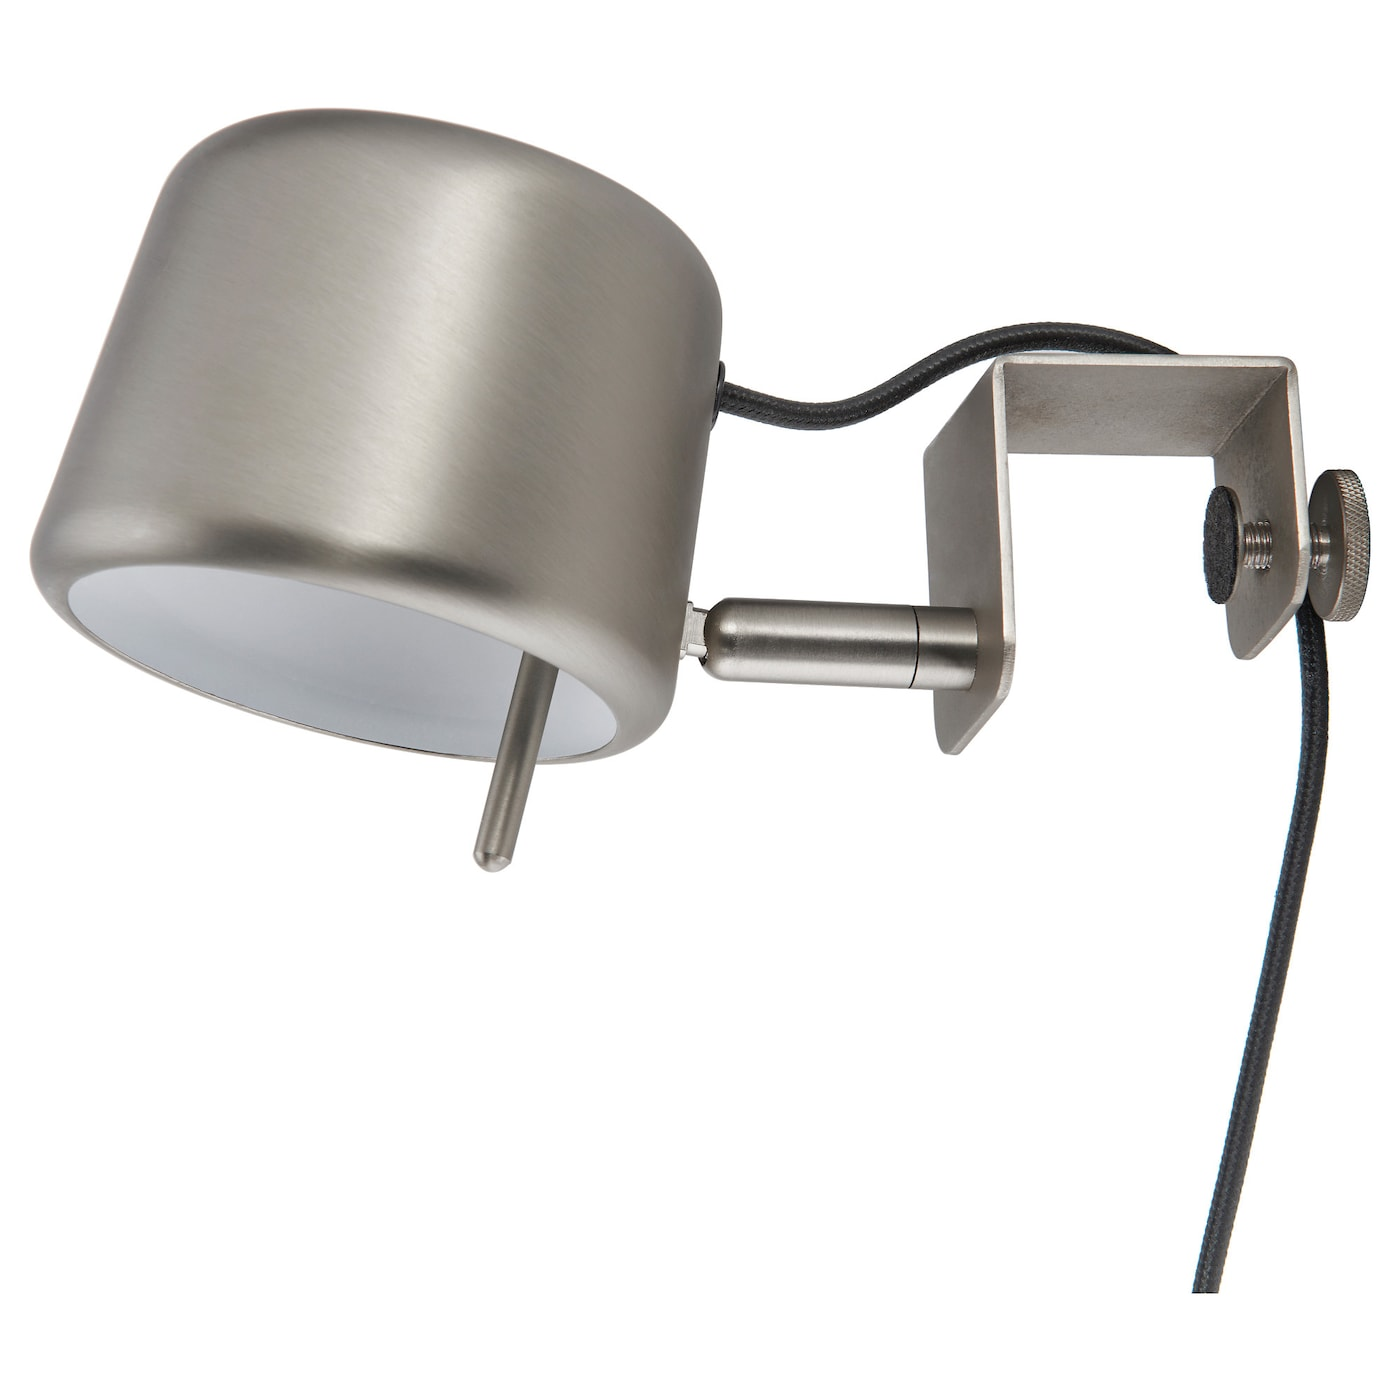 IKEA VARV clamp spotlight Easy to attach to the headboard for reading light in your bed.